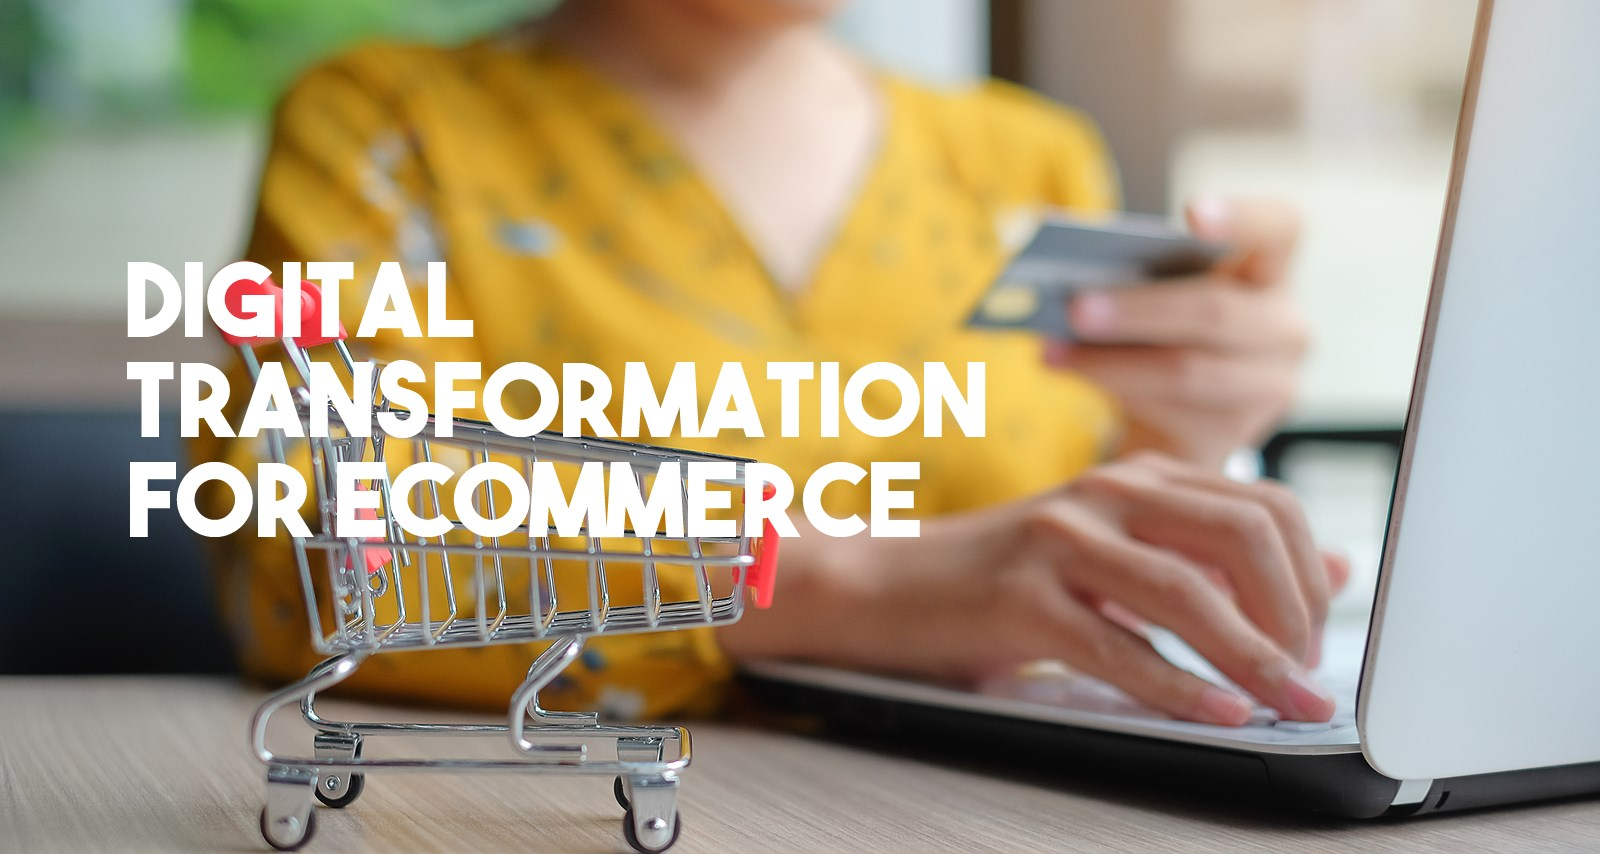 digital-transformation-credis-visca-e-commerce